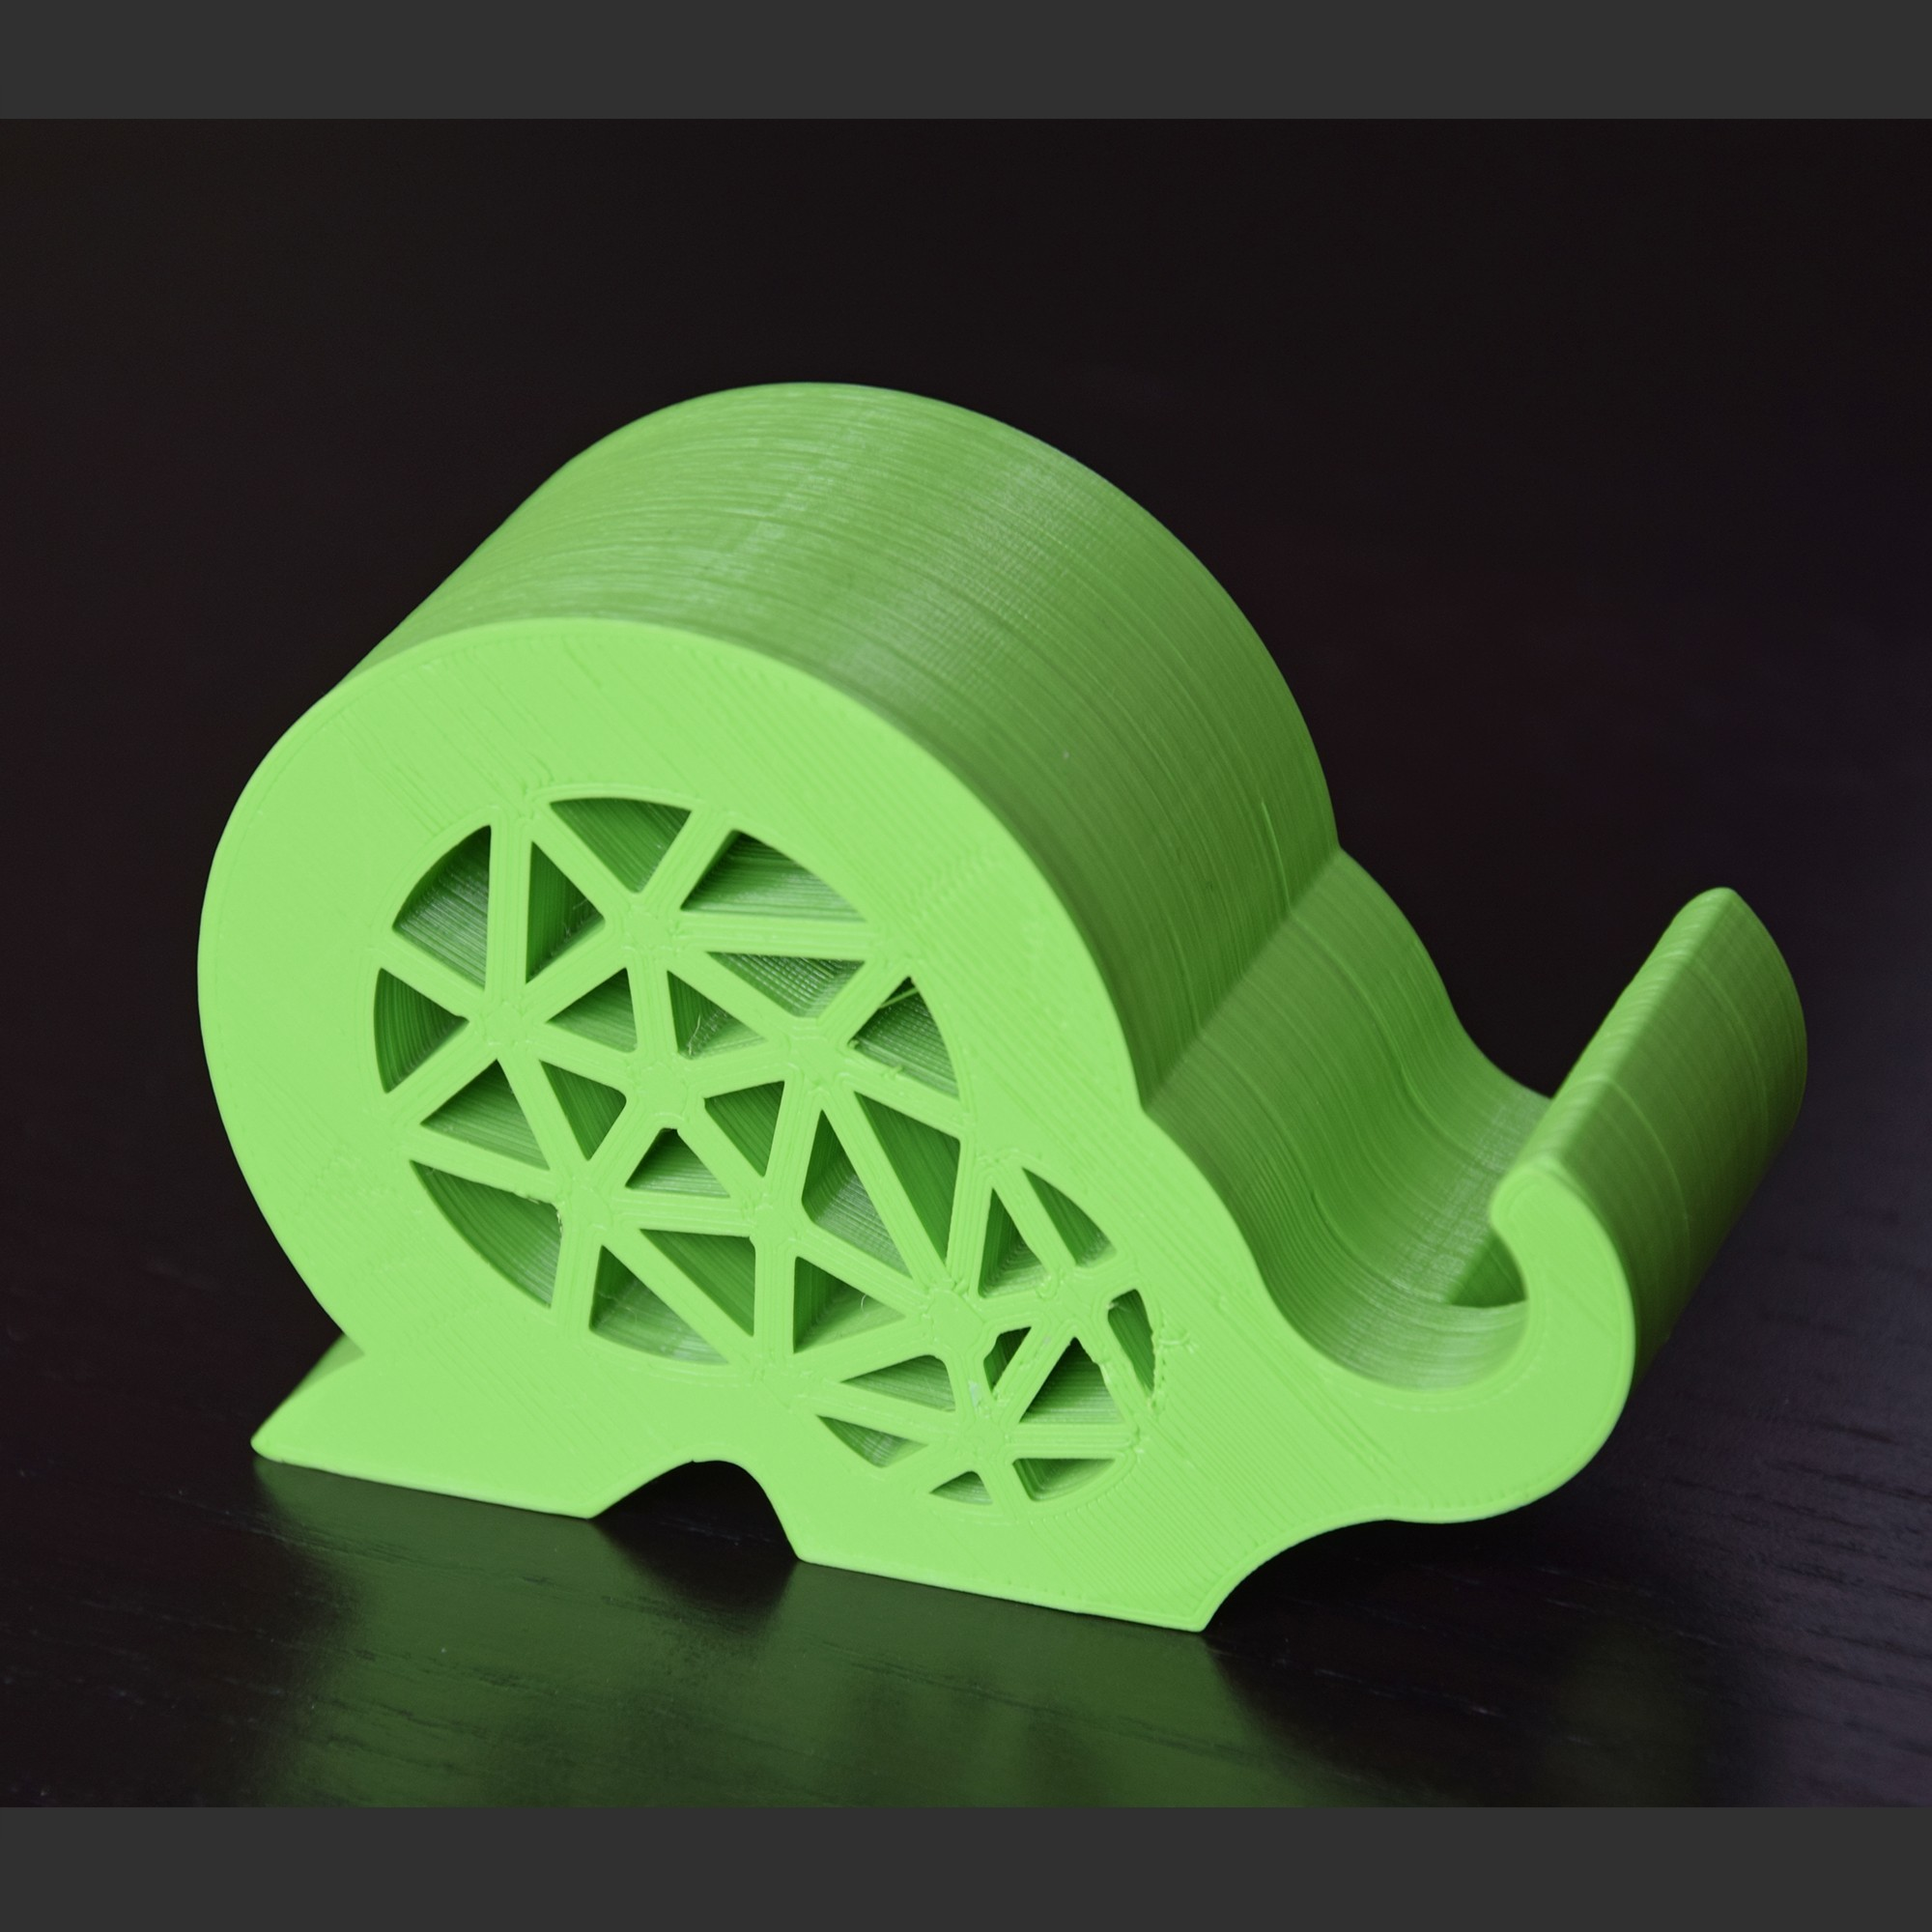 magigoocontest_mobileholder_byNawamy_03.jpg Download free STL file Magigoo mobile-holder • Template to 3D print, Nawamy